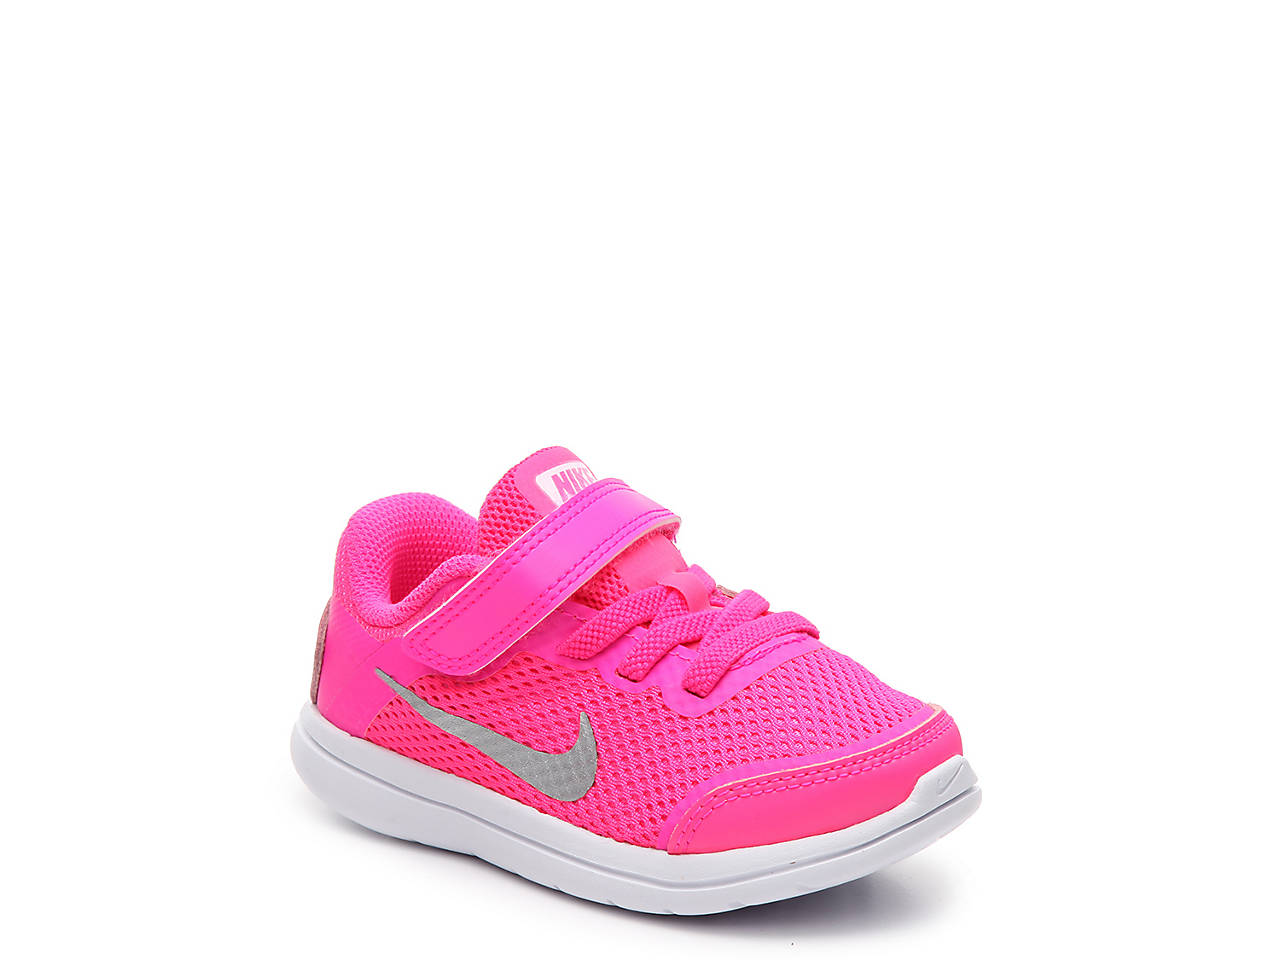 a57c4342696 Nike Flex 2016 Infant   Toddler Running Shoe Kids Shoes